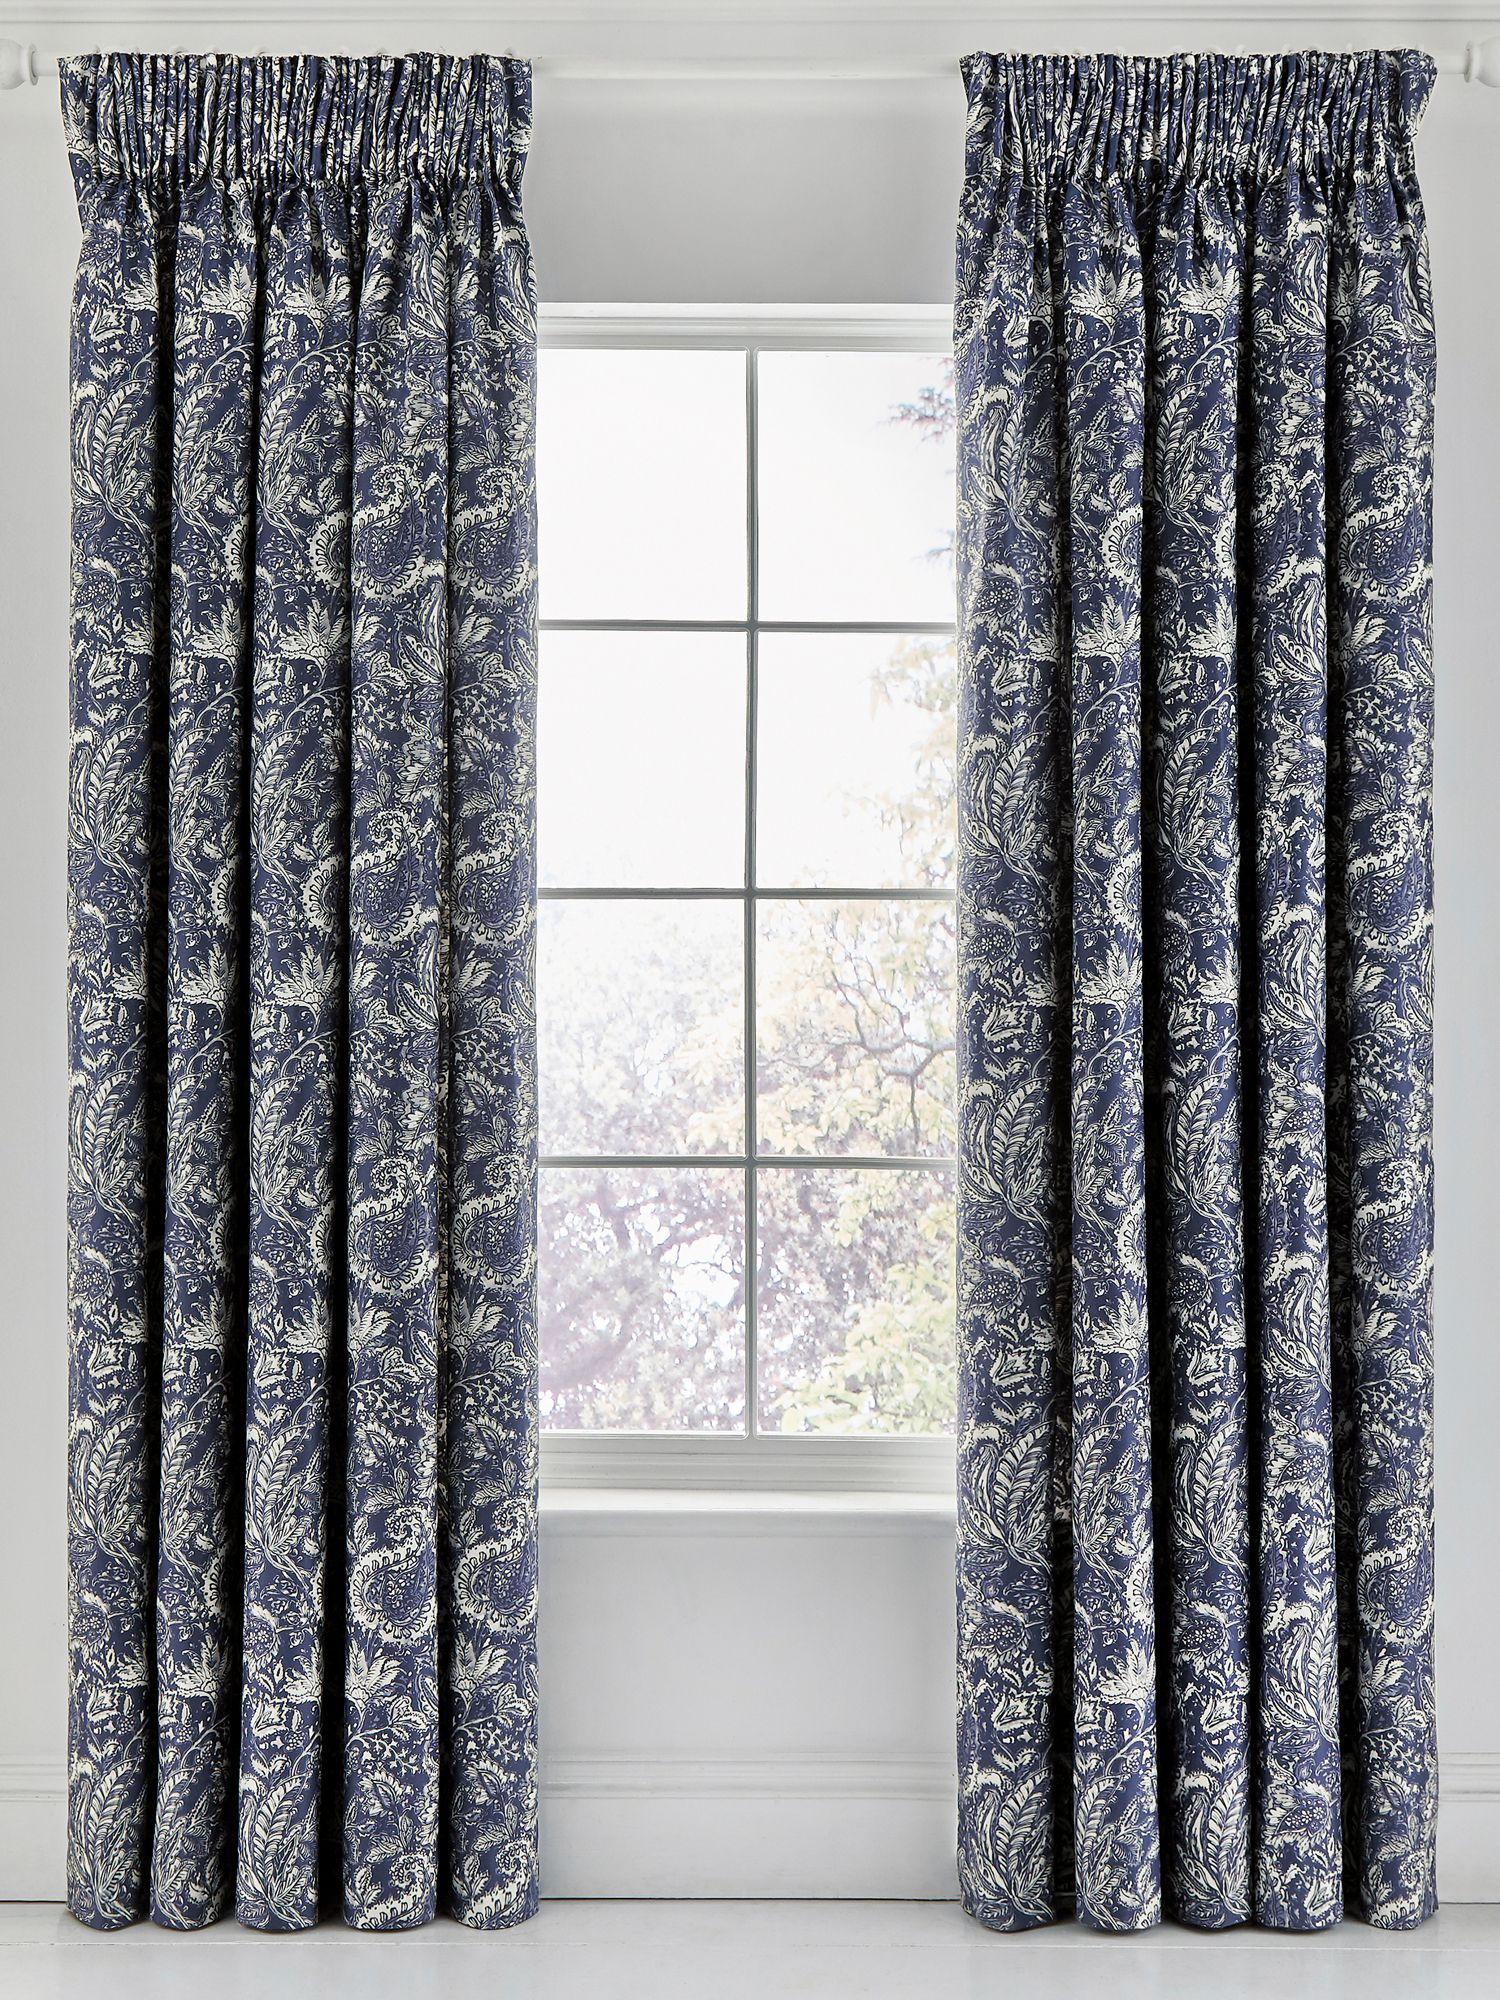 Curtain Deals Buy Cheap Cotton Velvet Curtains Compare Curtains